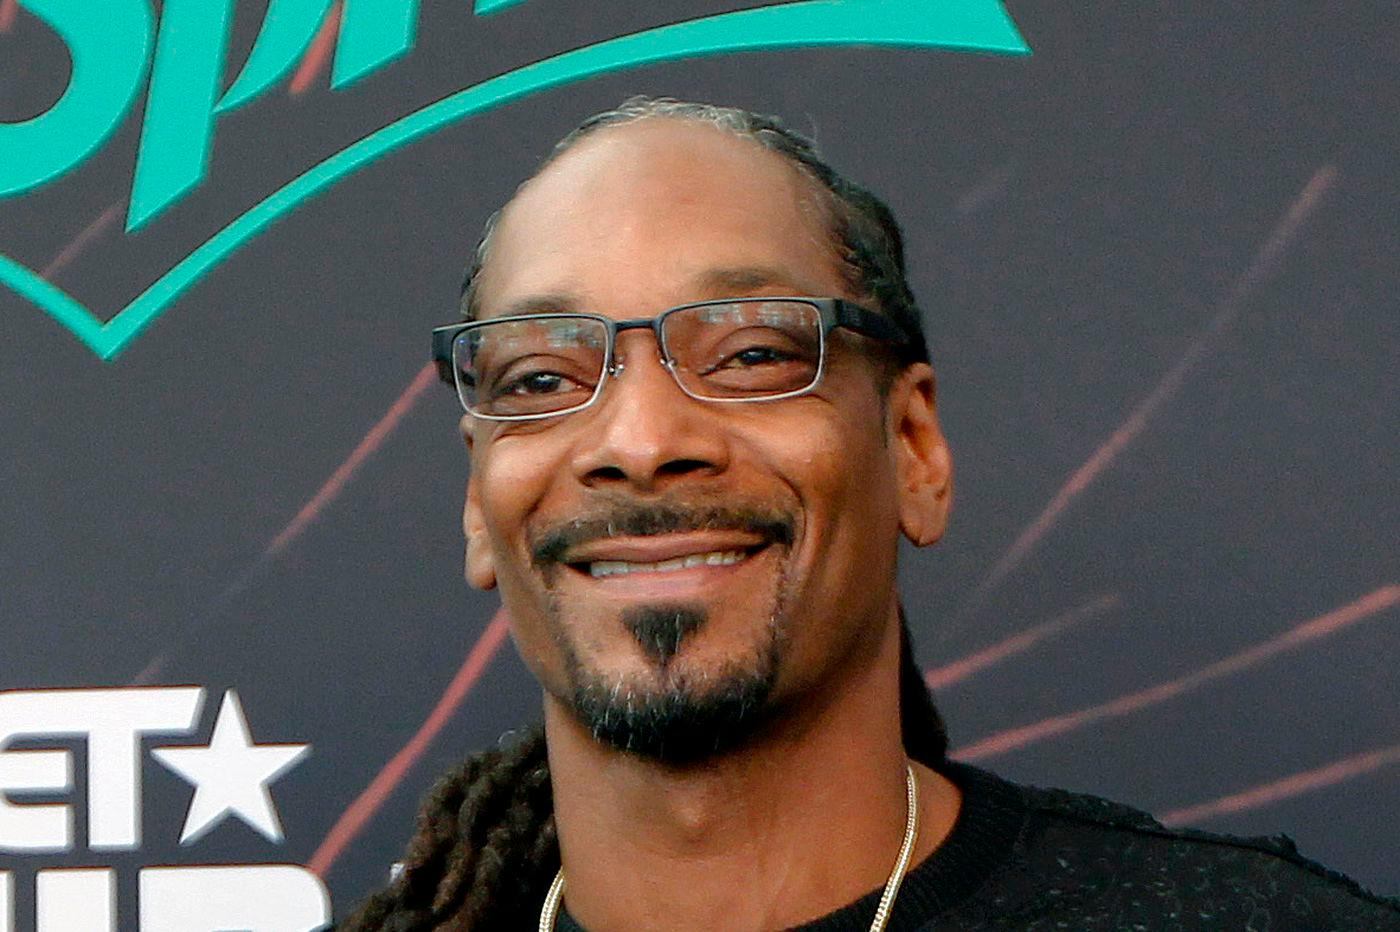 Snoop Dogg Apologizes To His Wife In Song After Celina Powell Scandal